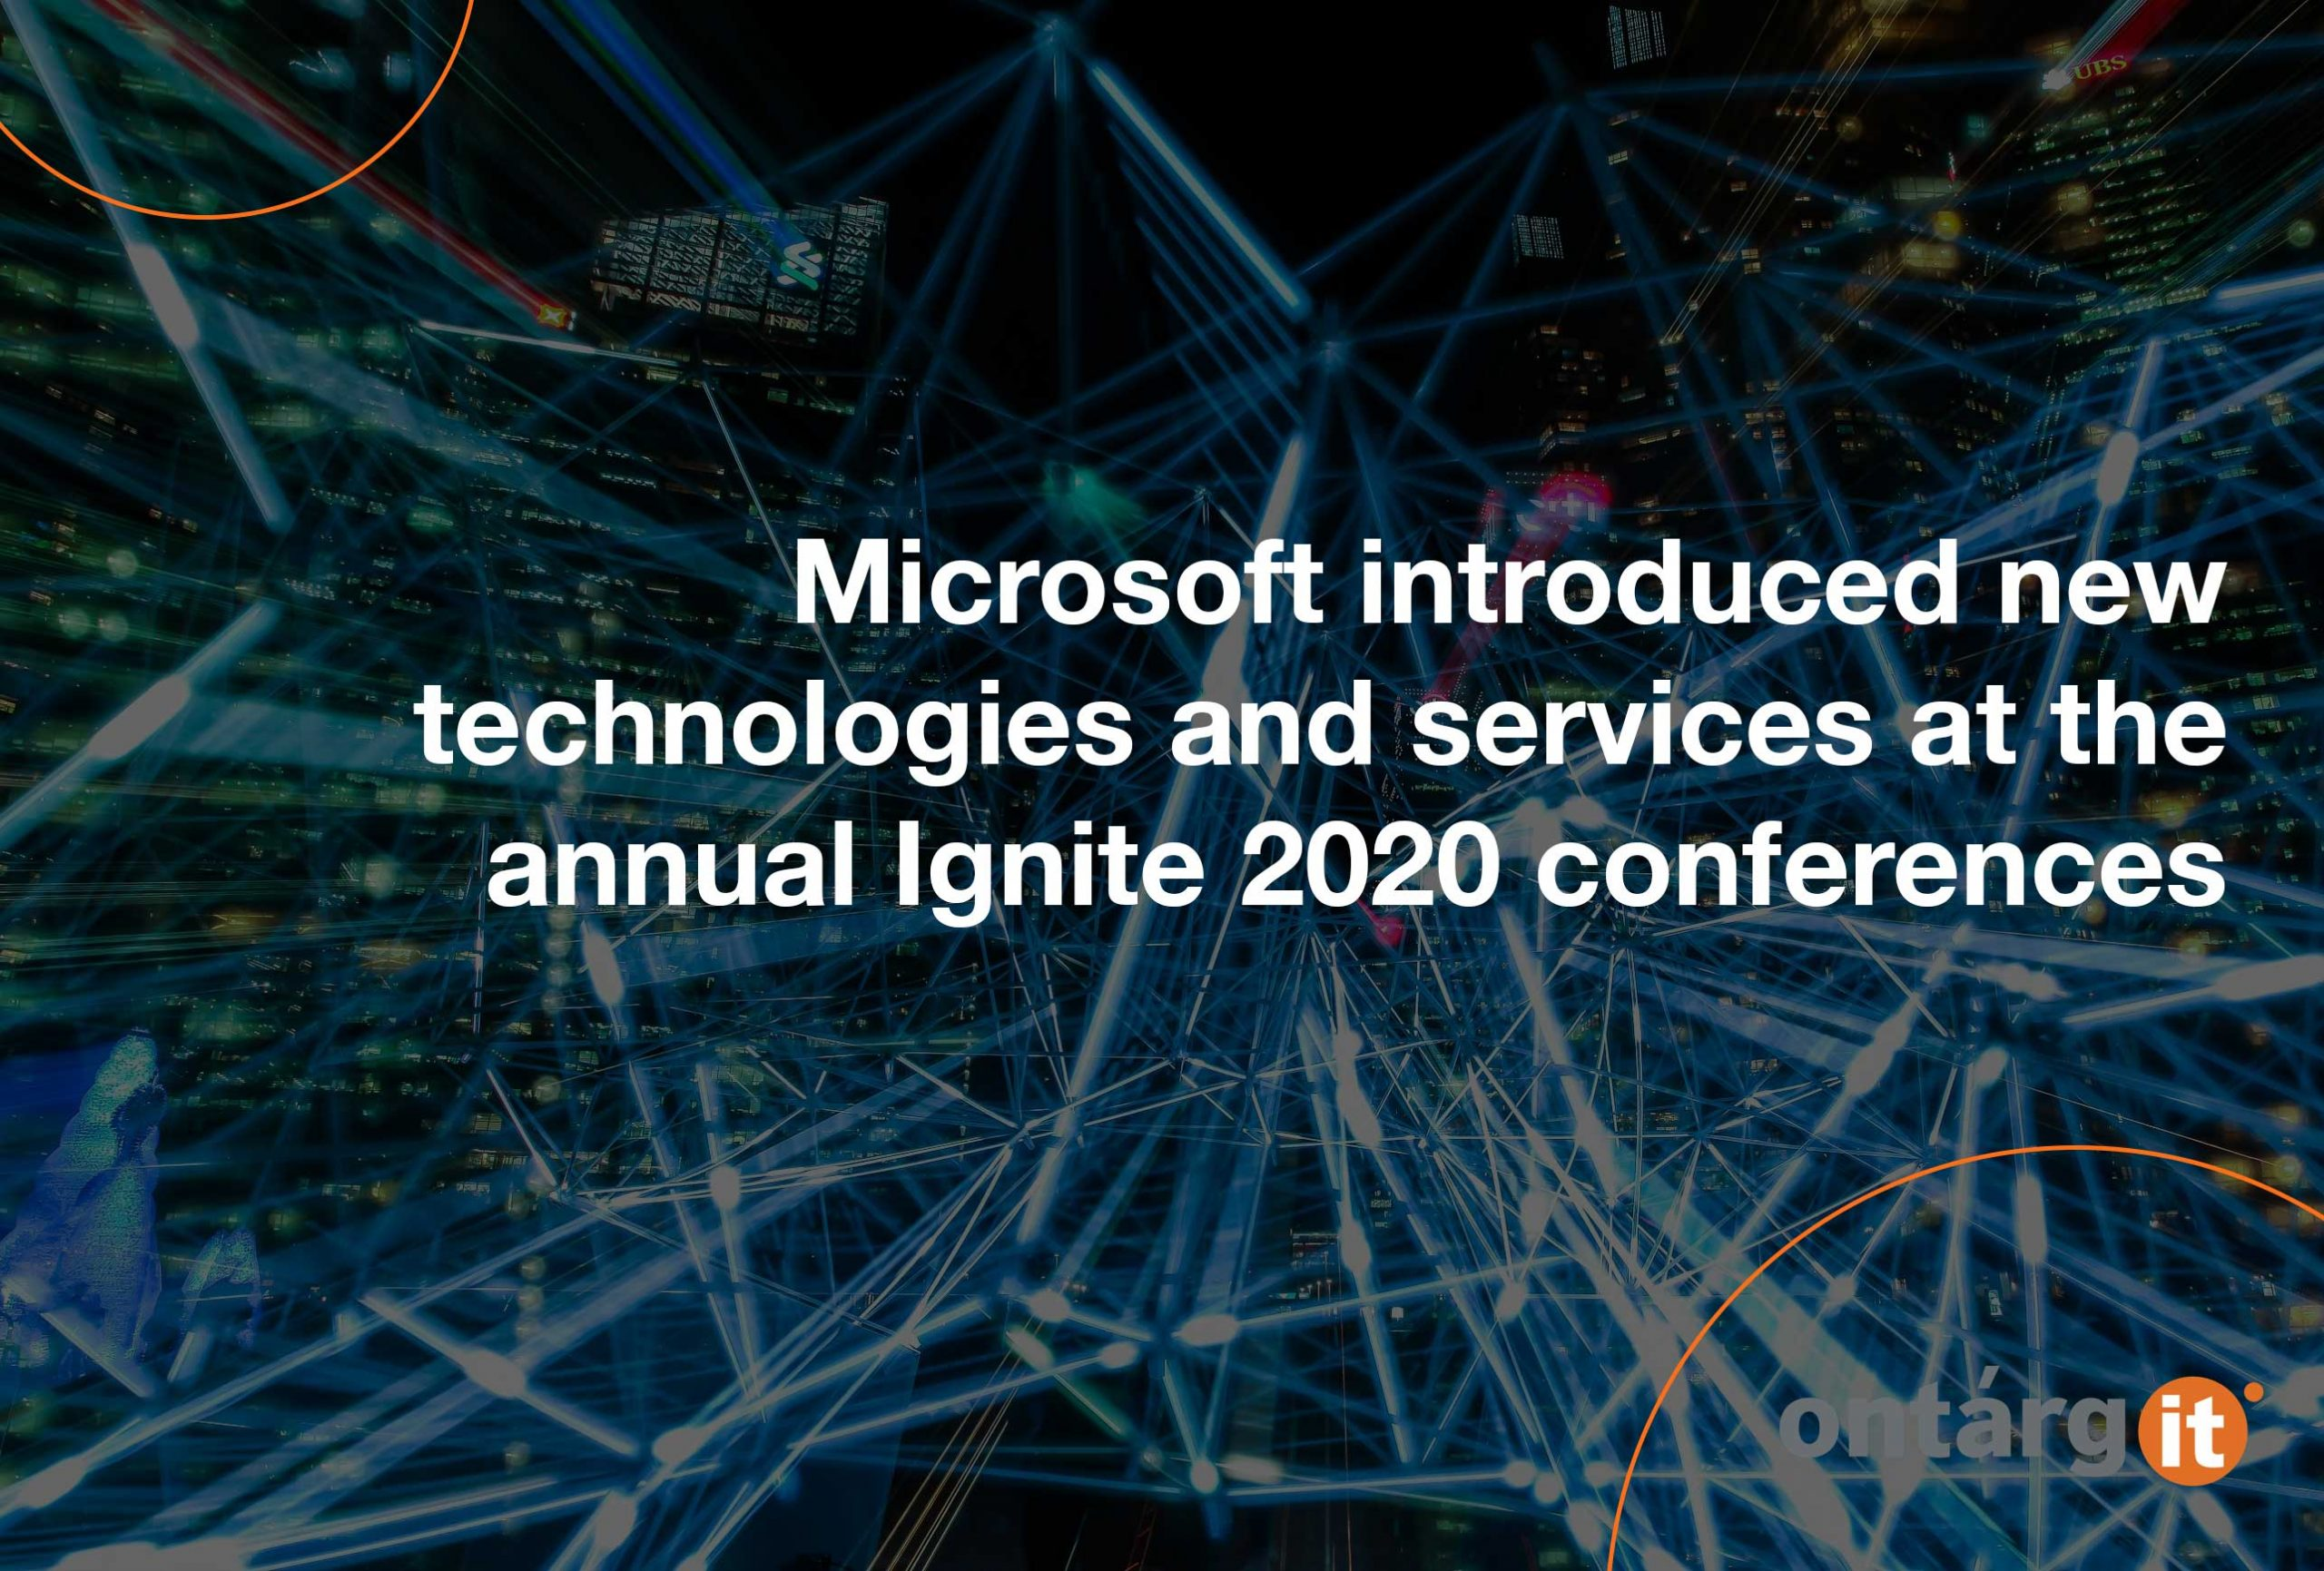 Microsoft-introduced-new-technologies-and-services-at-the-annual-Ignite-2020-conferences